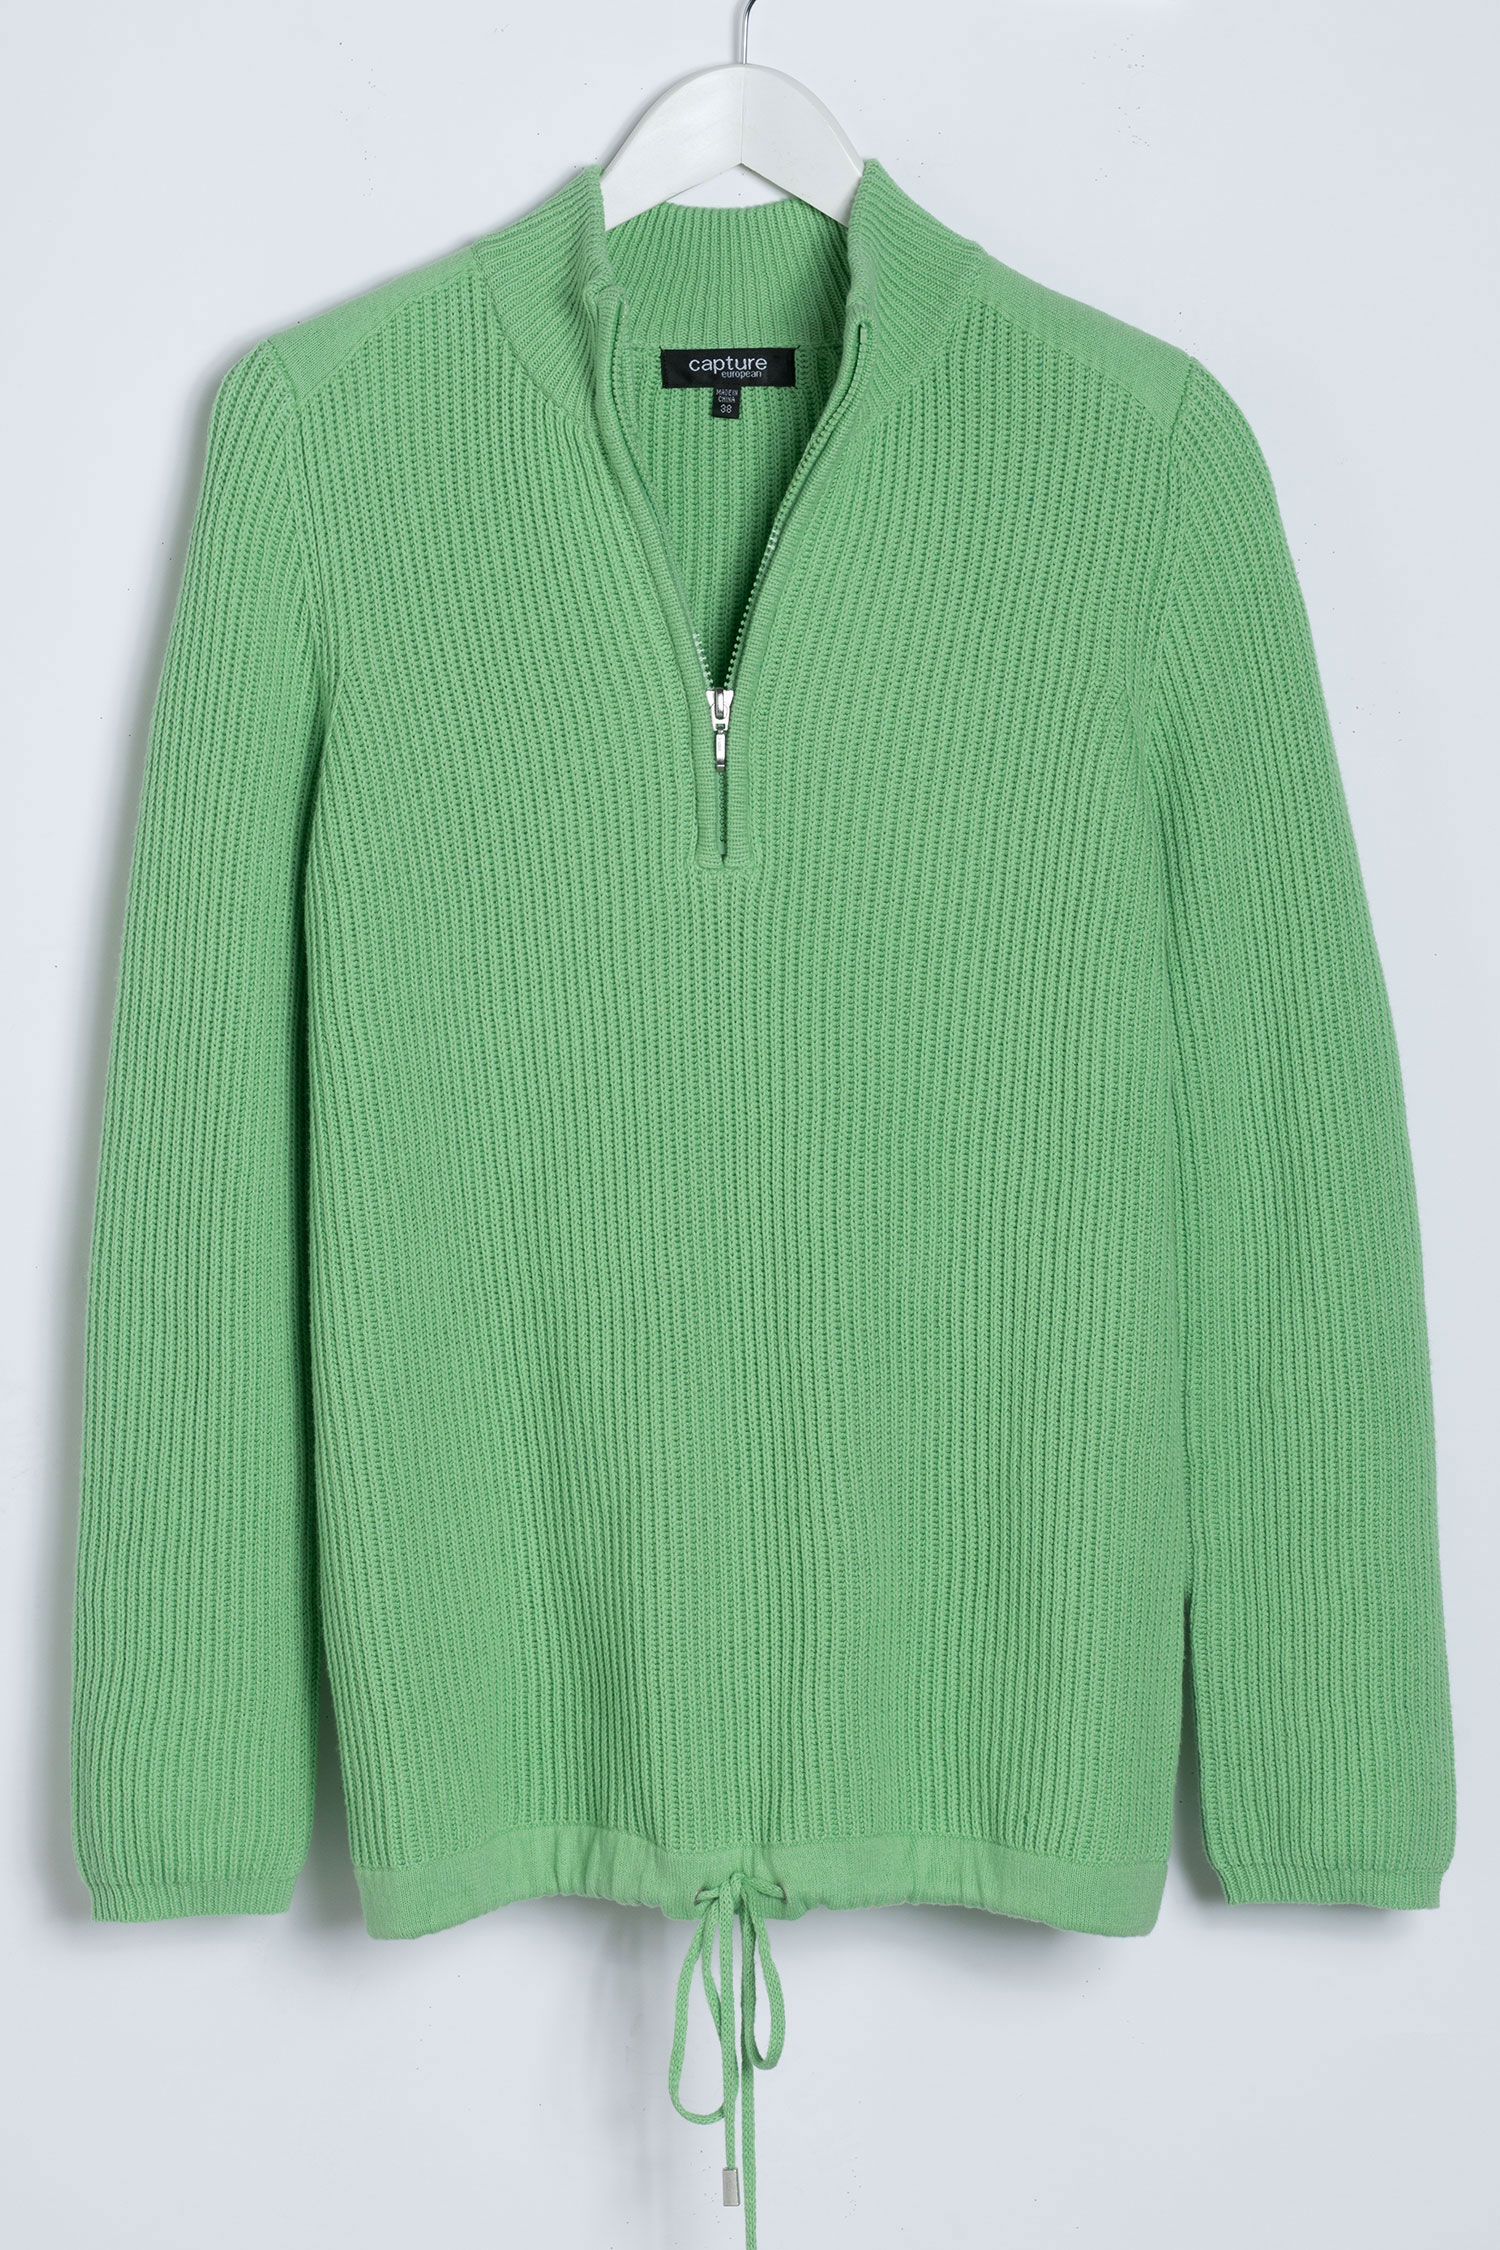 Go Green with green clothes: Capture European Ribbed 1/2 Zip Sweater